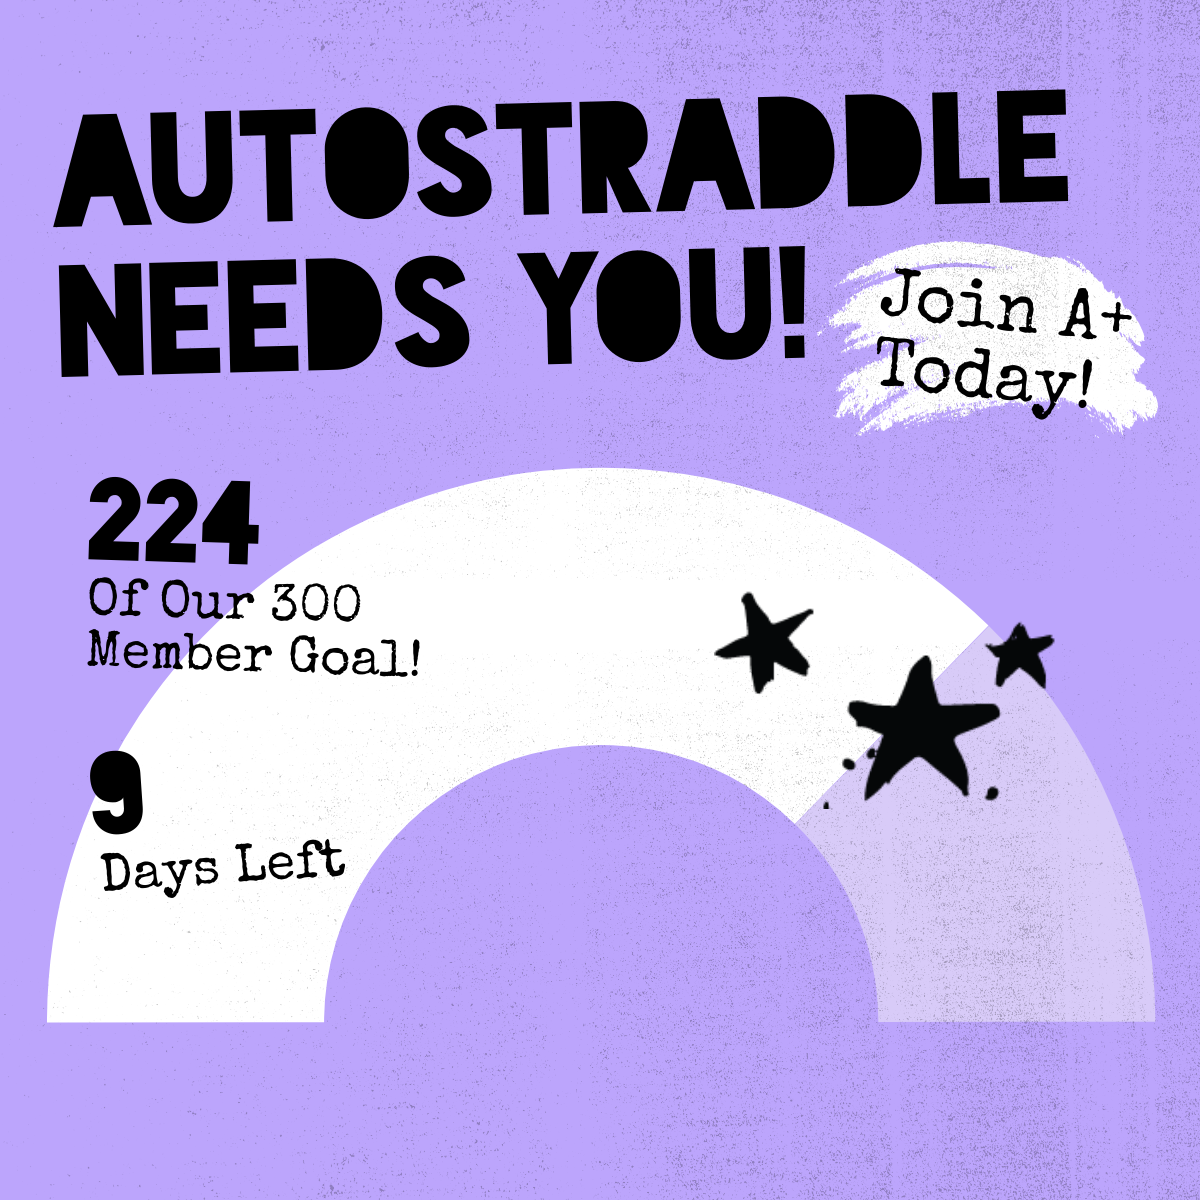 Autostraddle Needs You! Join A+ Today! 224 of our 300 member goal! 9 Days Left. An archway fills with white to indicate progress.